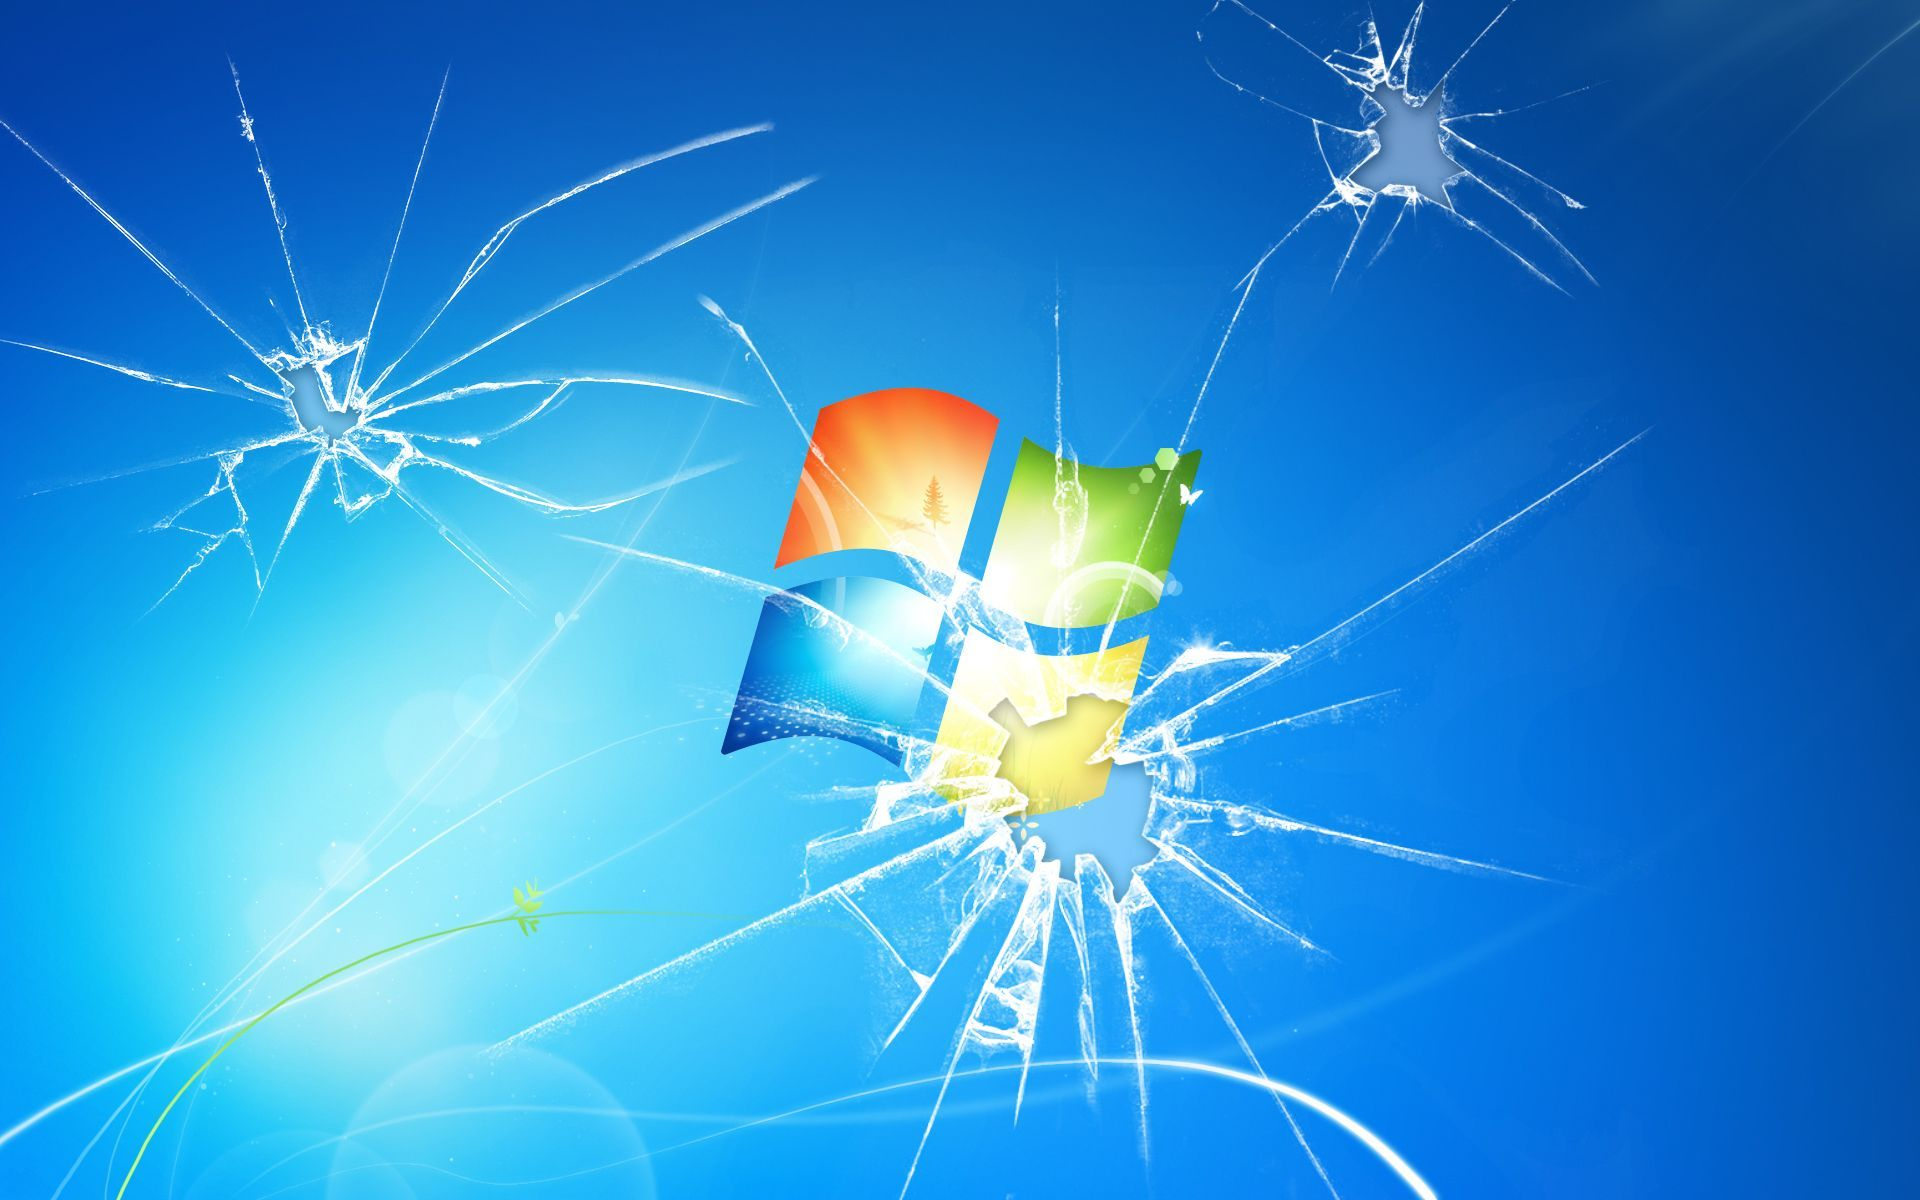 cracked screen wallpaper for android